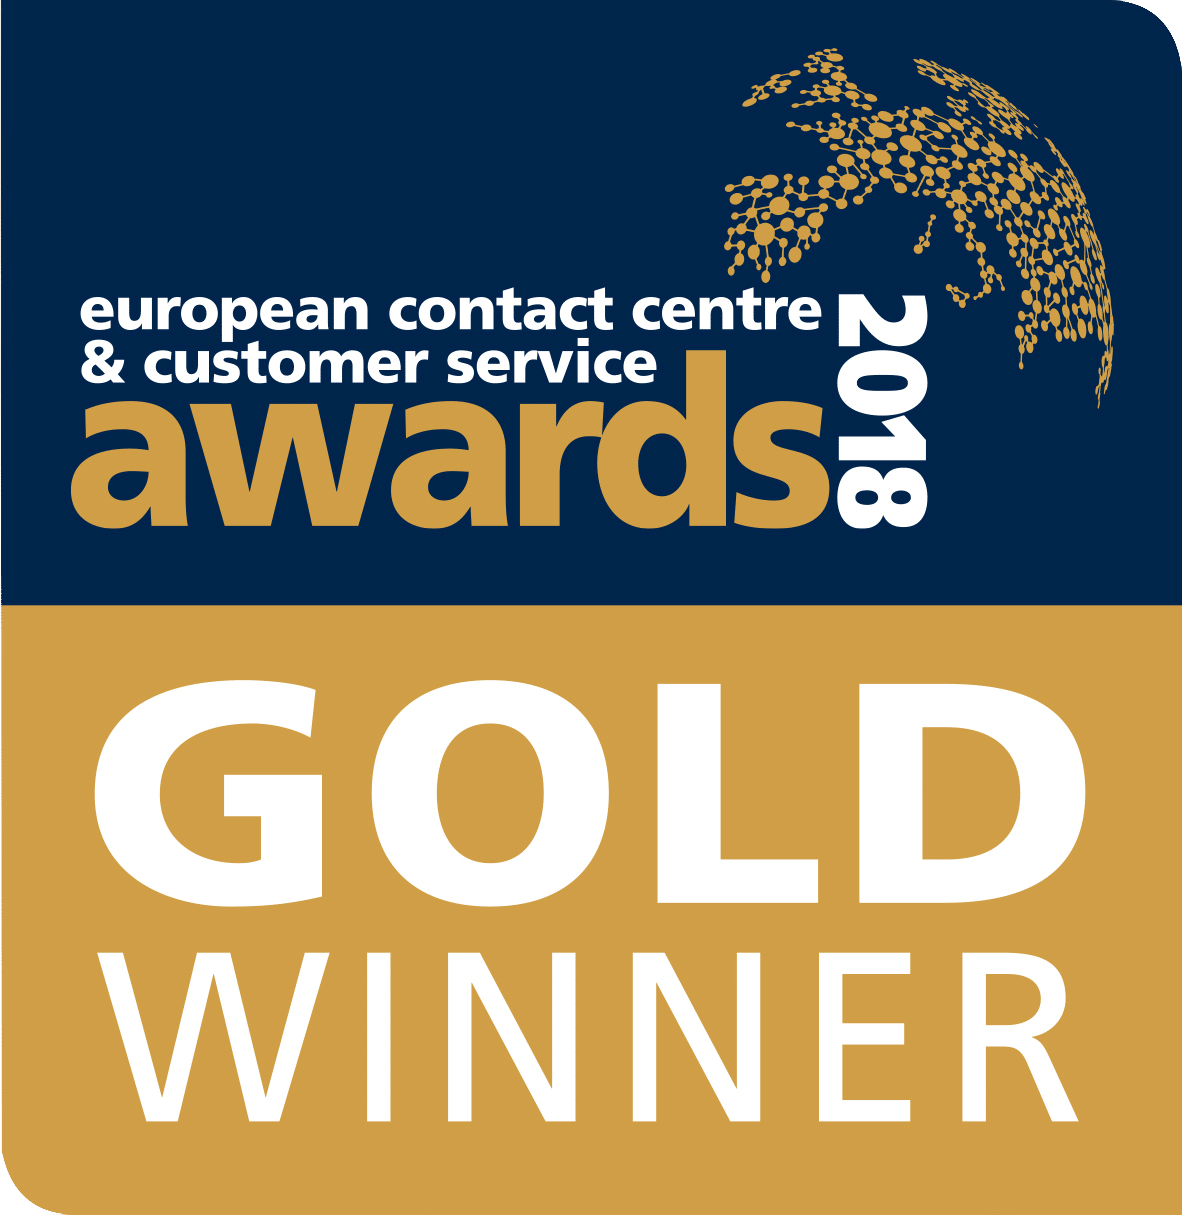 ecccsa-gold-winner-logo-icon-contact-call-centre